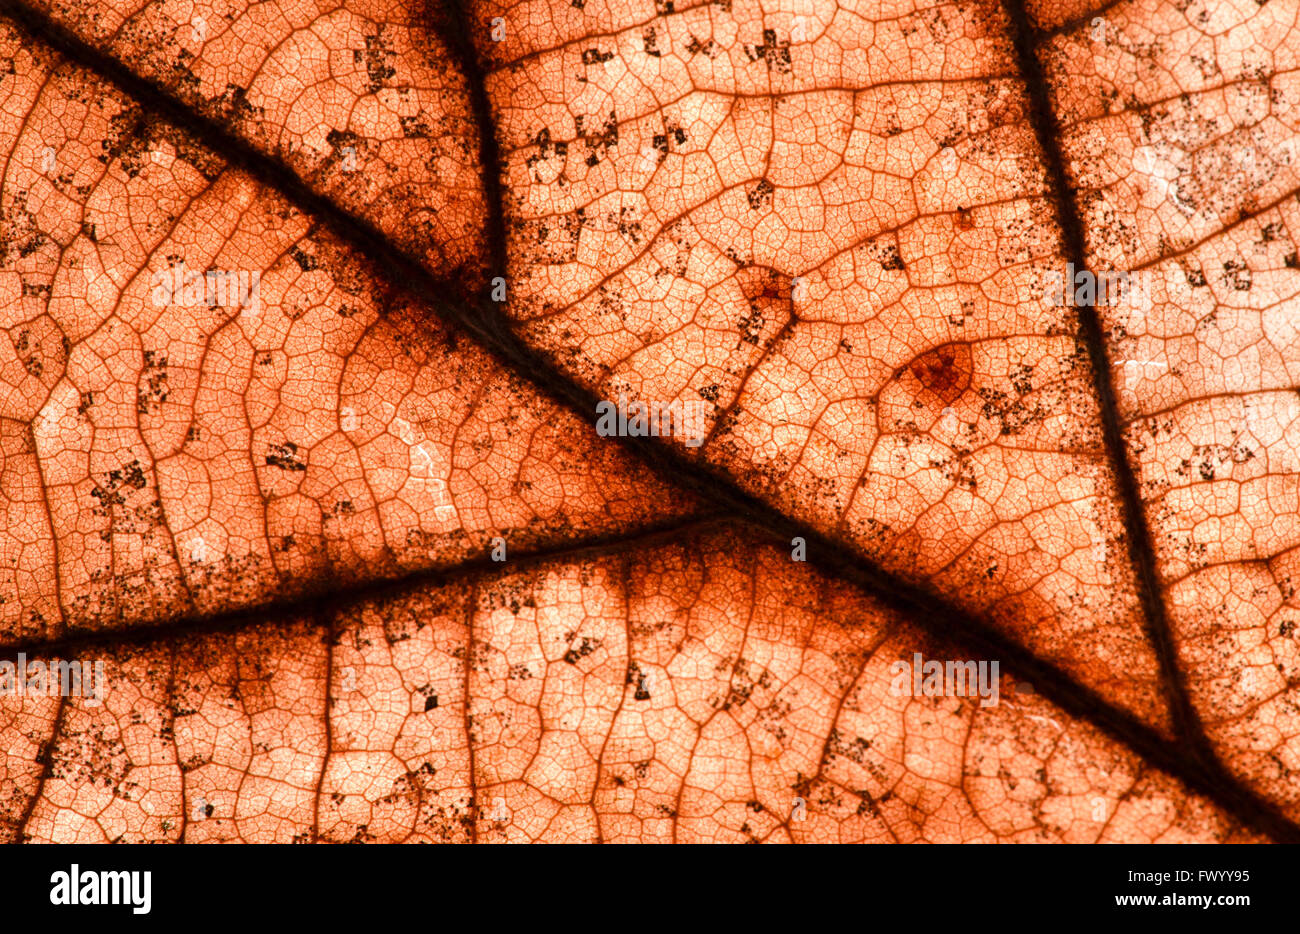 Detail of old red autumn leaf structure. - Stock Image